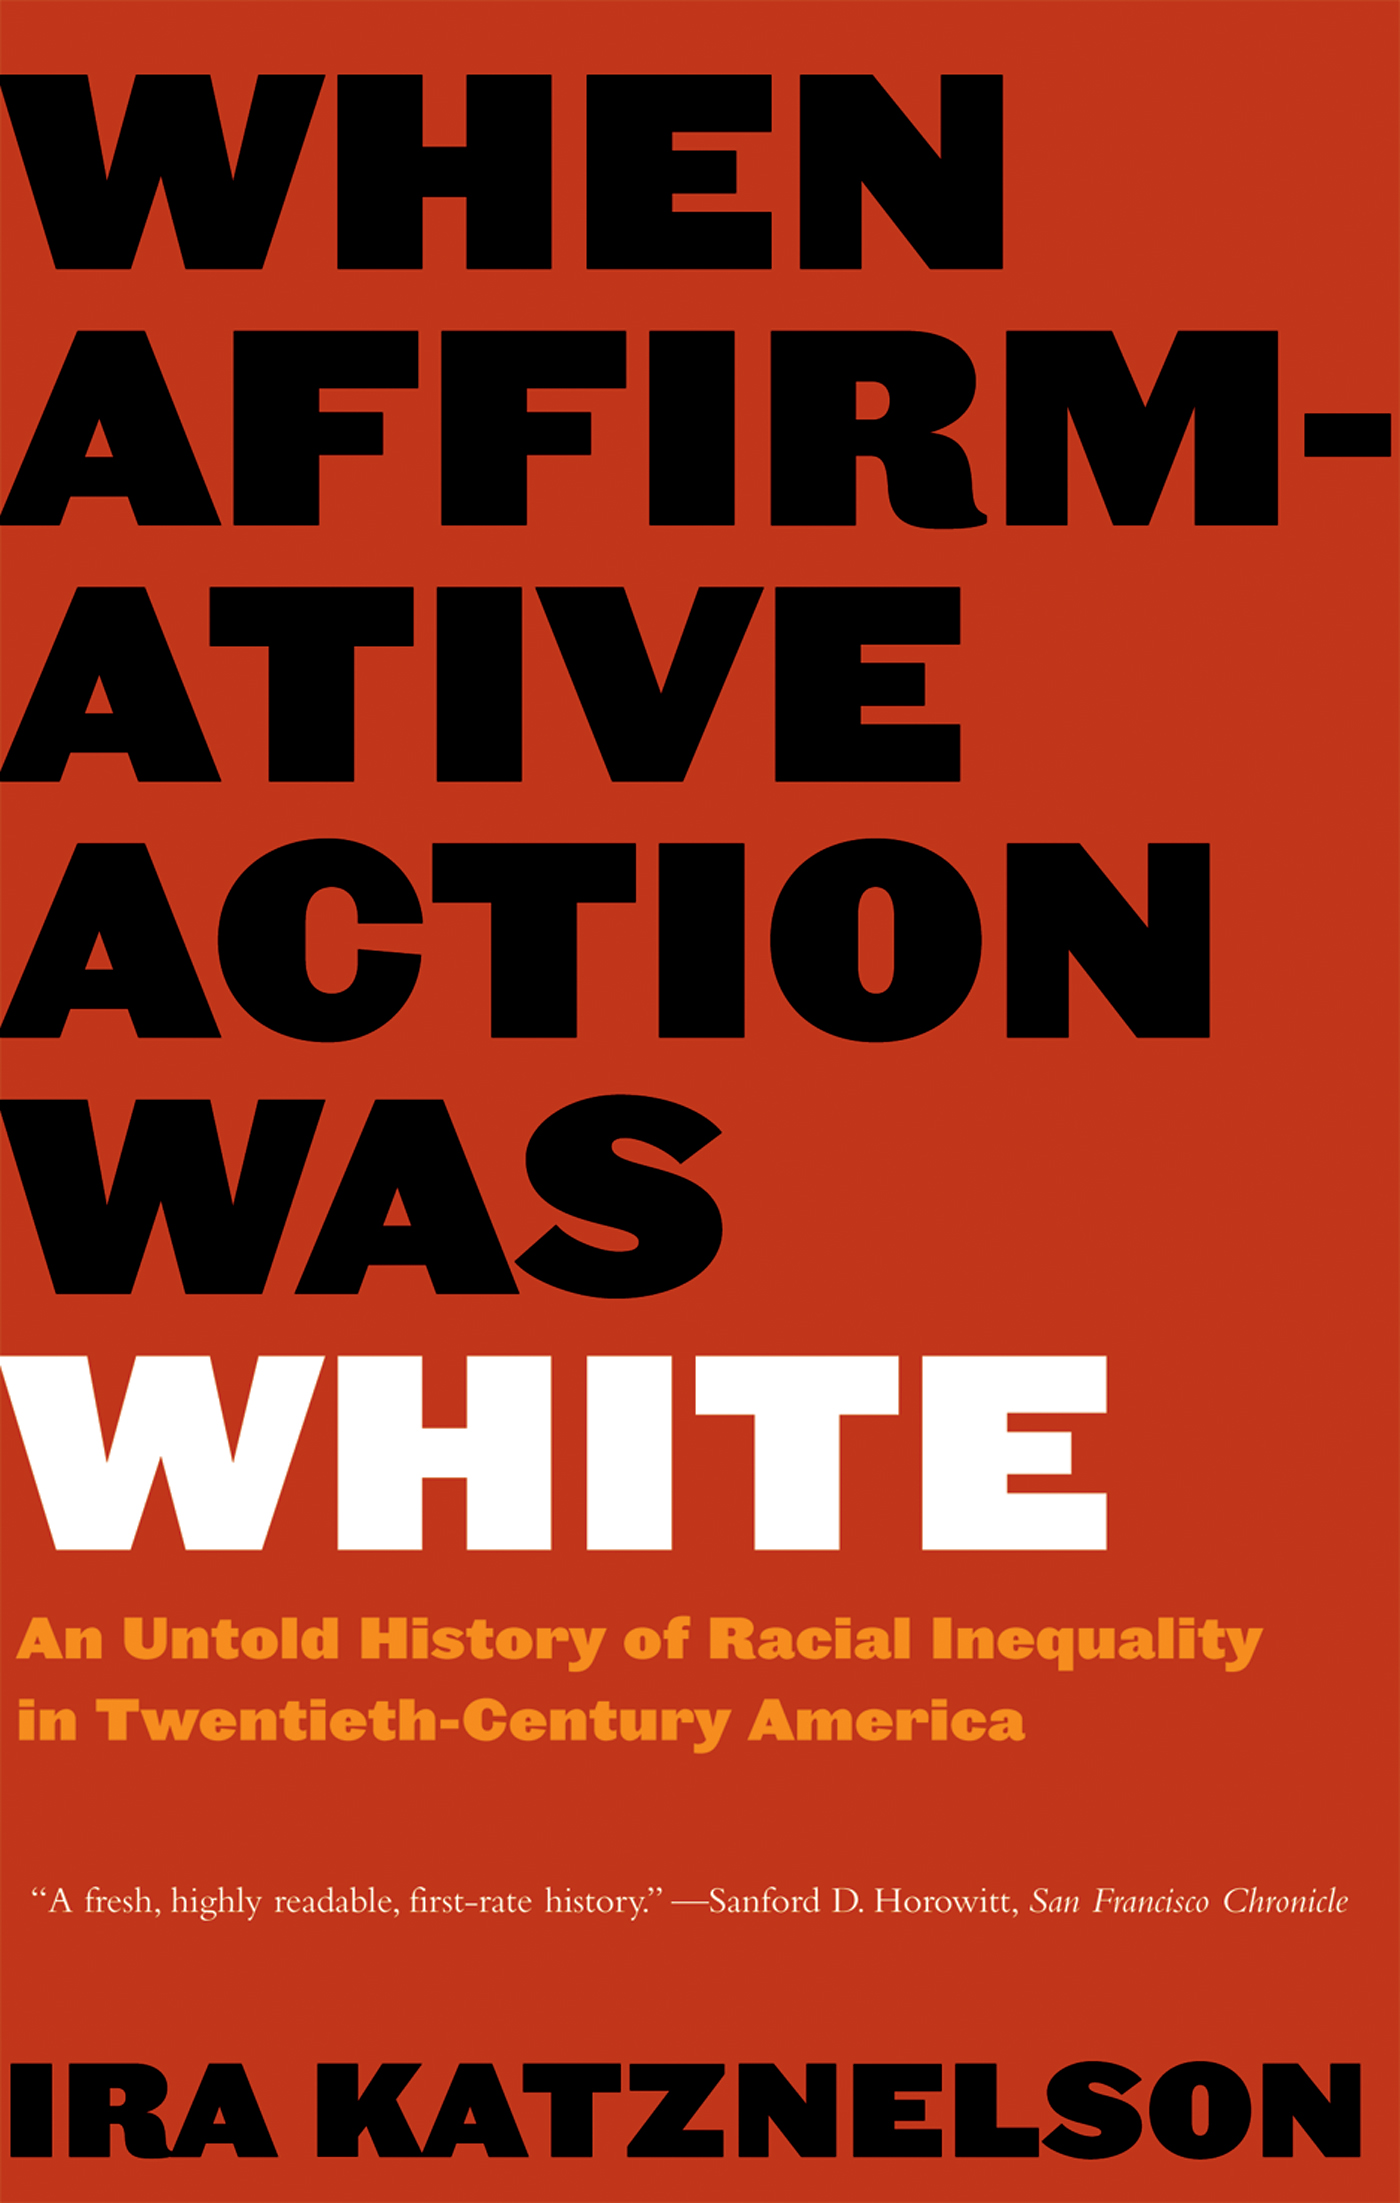 When Affirmative Action Was White: An Untold History of Racial Inequality in Twentieth-Century America [electronic resource]